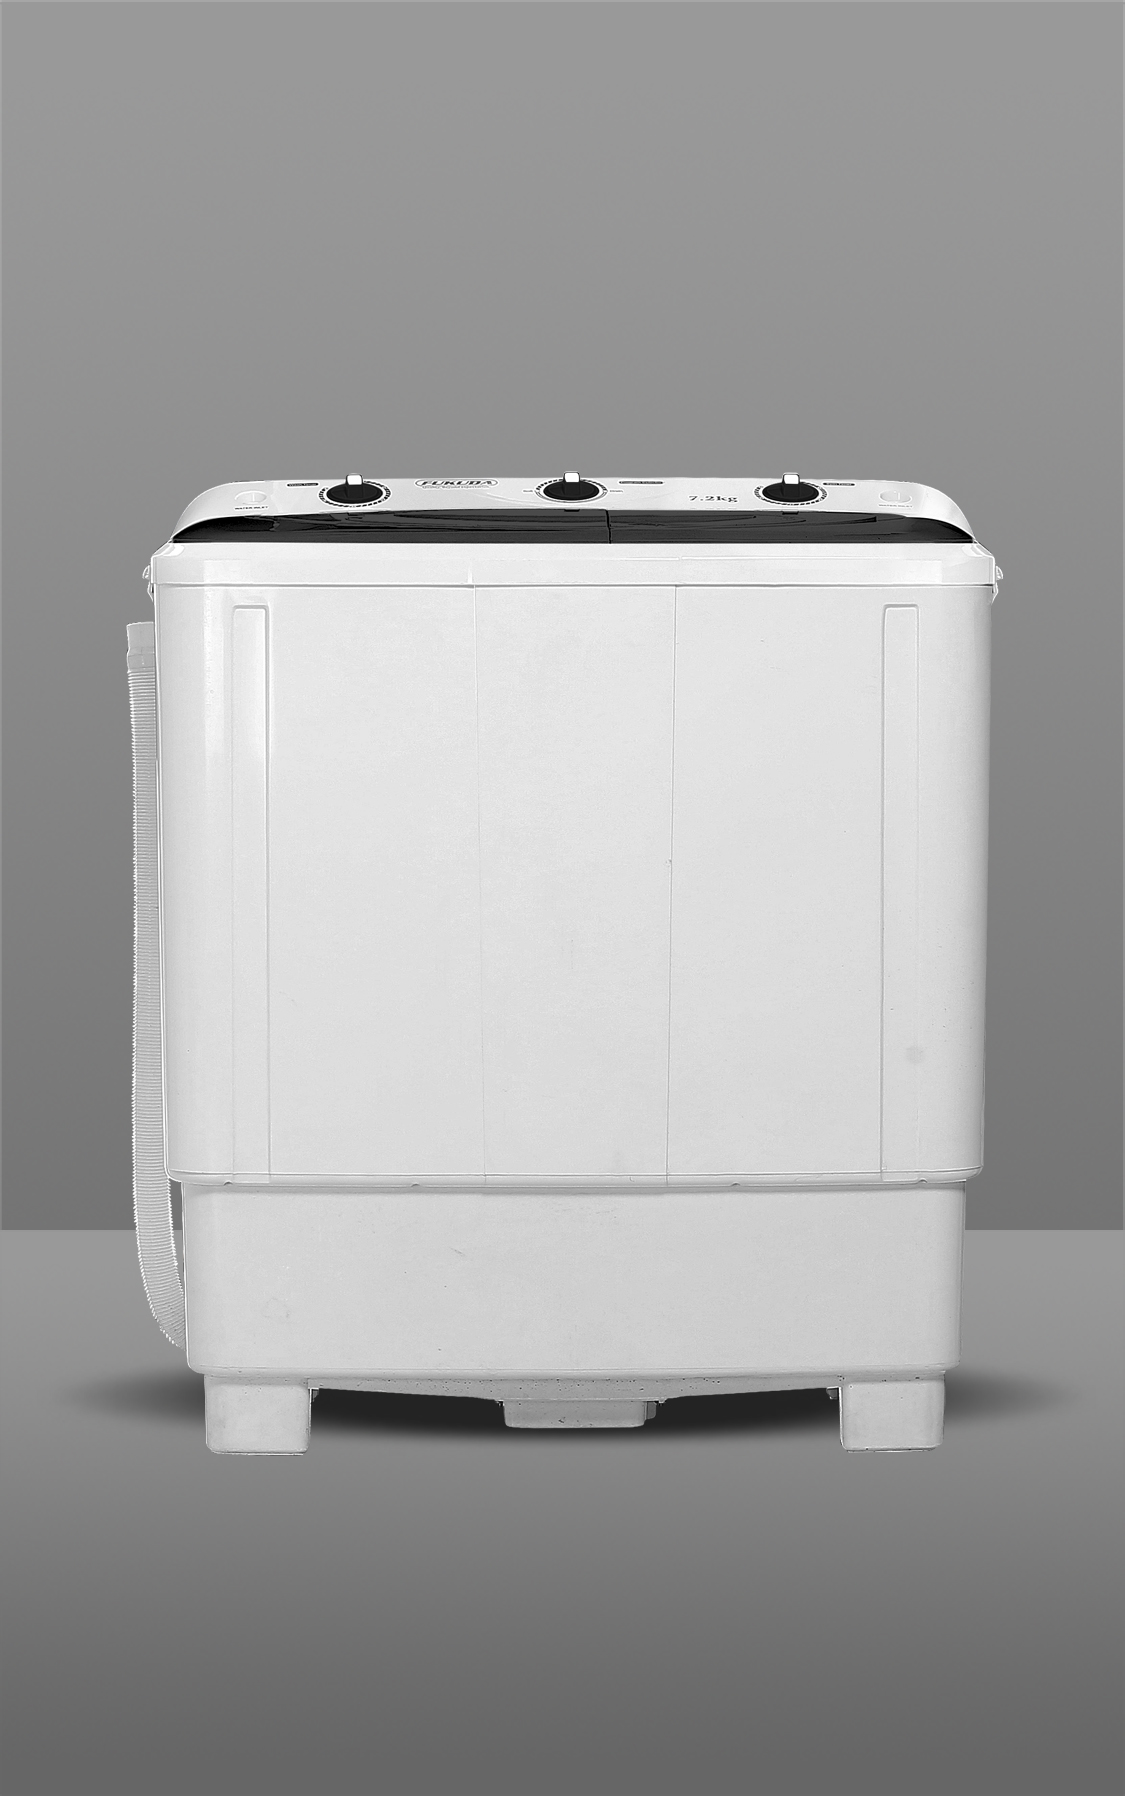 7.2 KG TWIN TUB WASHING MACHINE